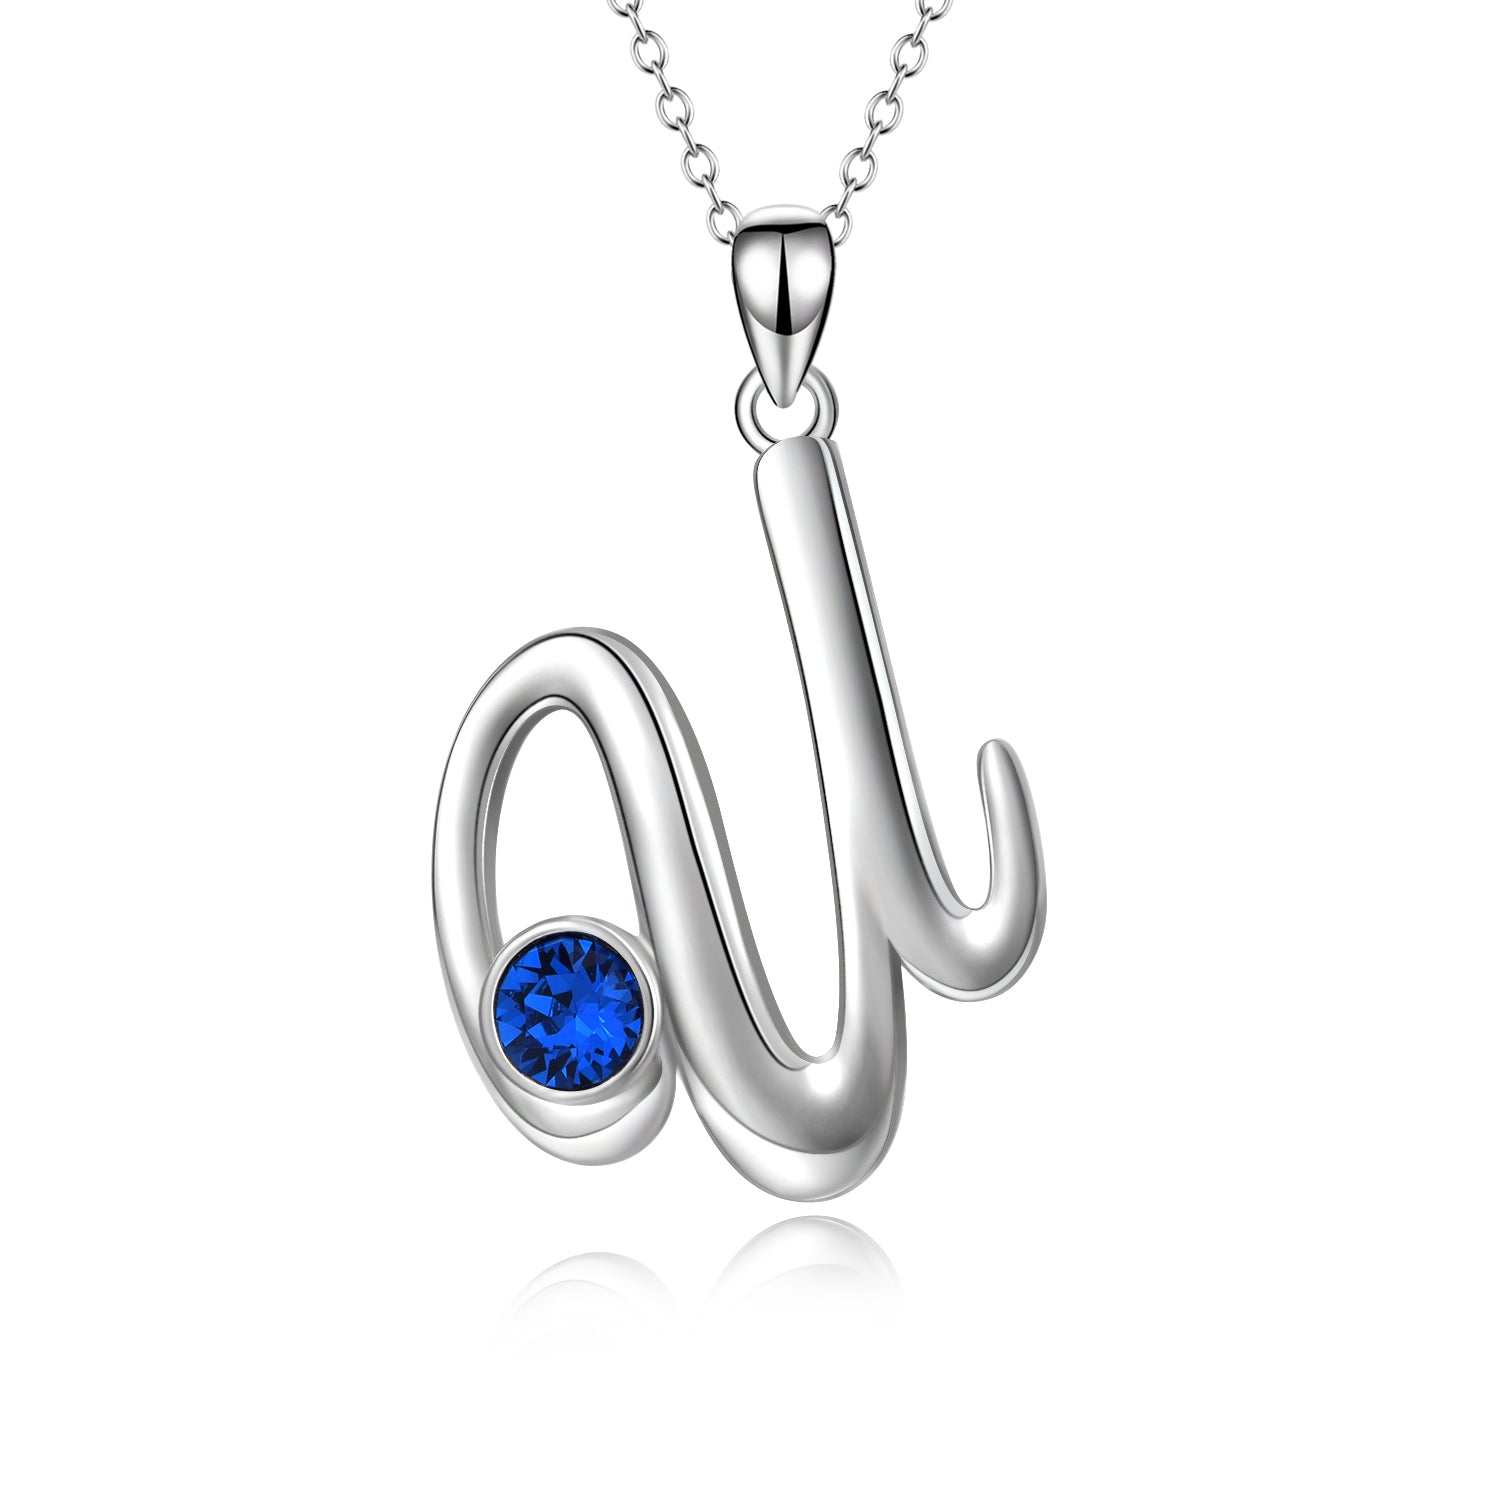 Latest Design Hot Selling Real Silver Pendant U Necklace Jewelry